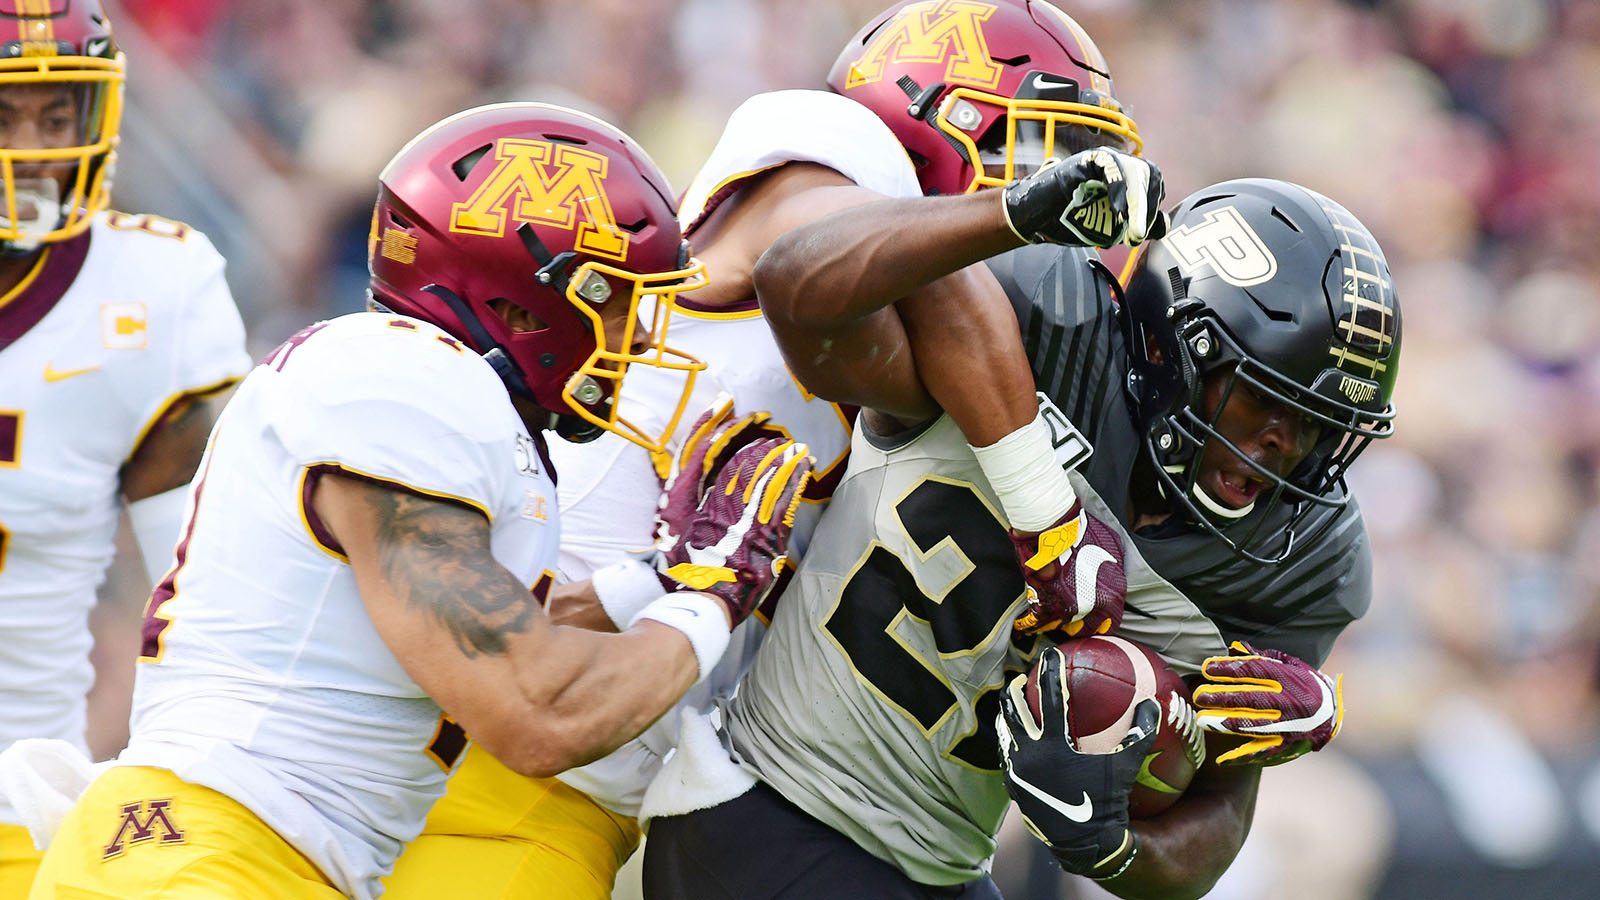 Sep 28, 2019; West Lafayette, IN, USA; Purdue Boilermakers running back King Doerue (22) goes up the middle against the Minnesota Gophers defense during the first half  at Ross-Ade Stadium. Mandatory Credit: Thomas J. Russo-USA TODAY Sports